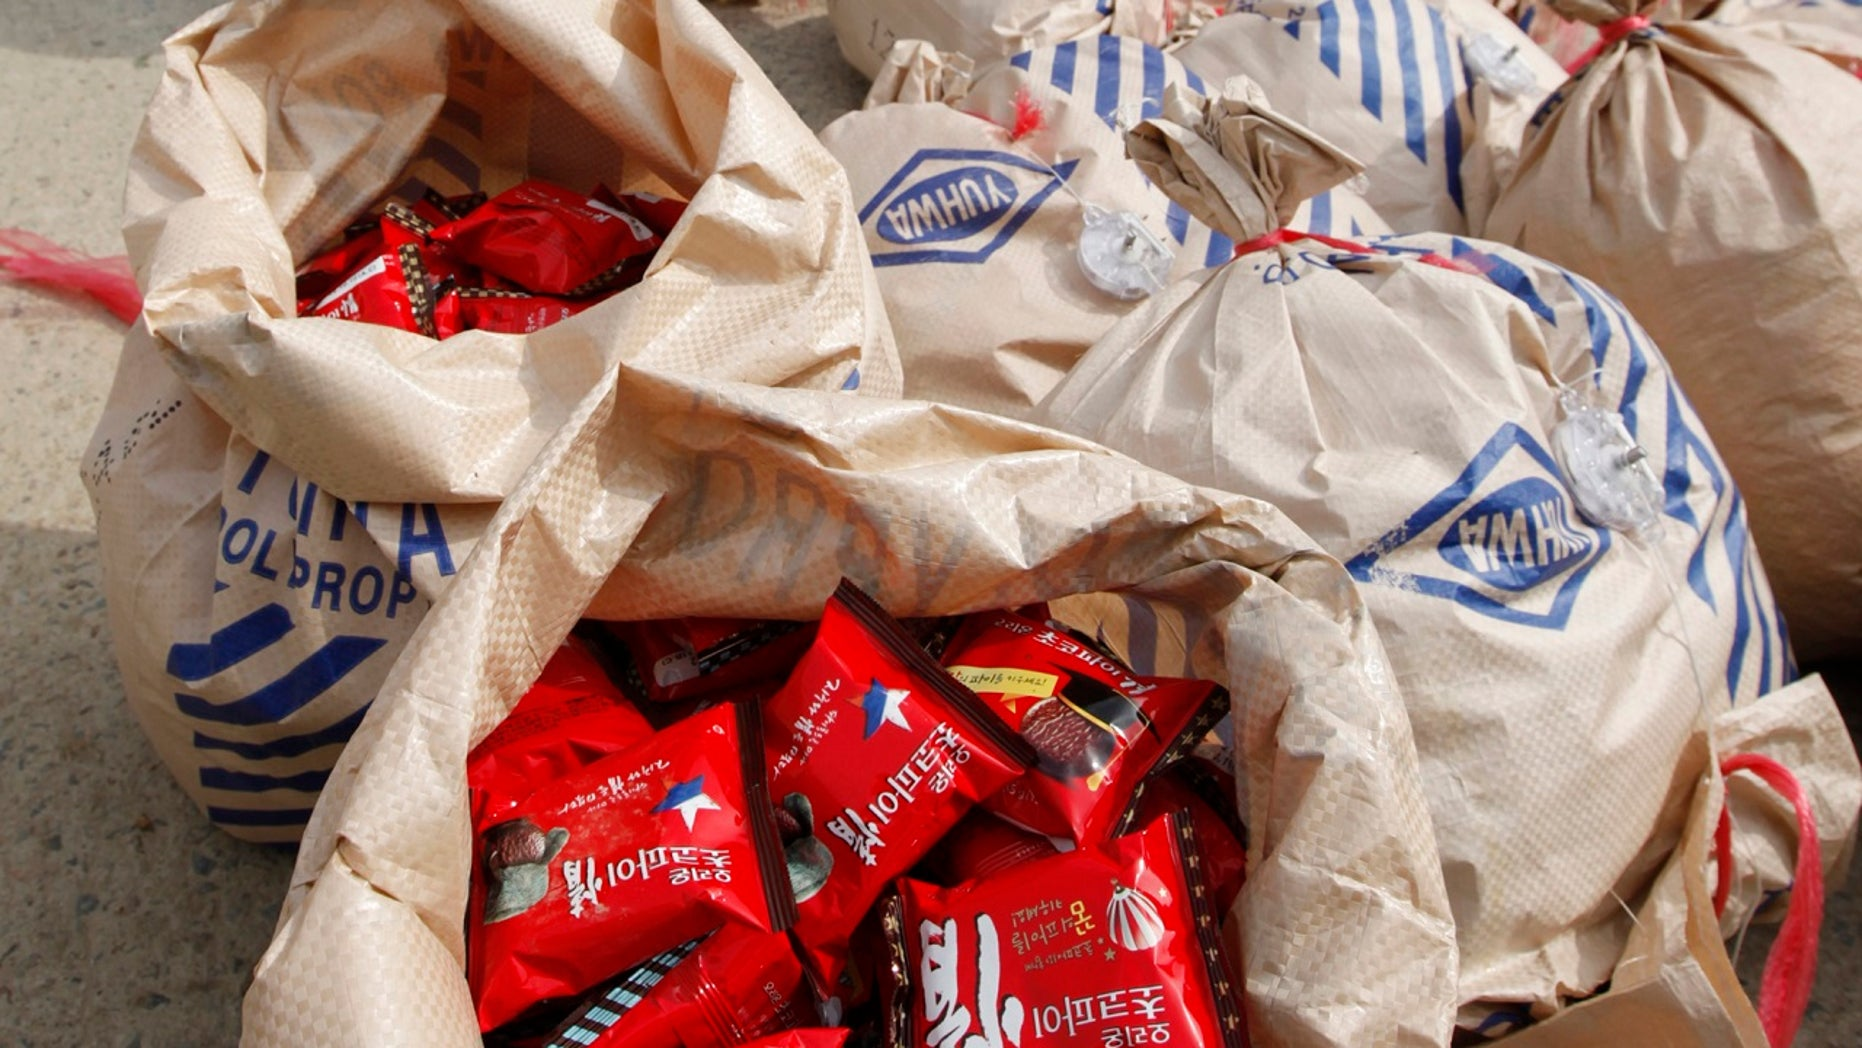 North Koreans are fond of Choco Pies (pictured here) that are made in South Korea.